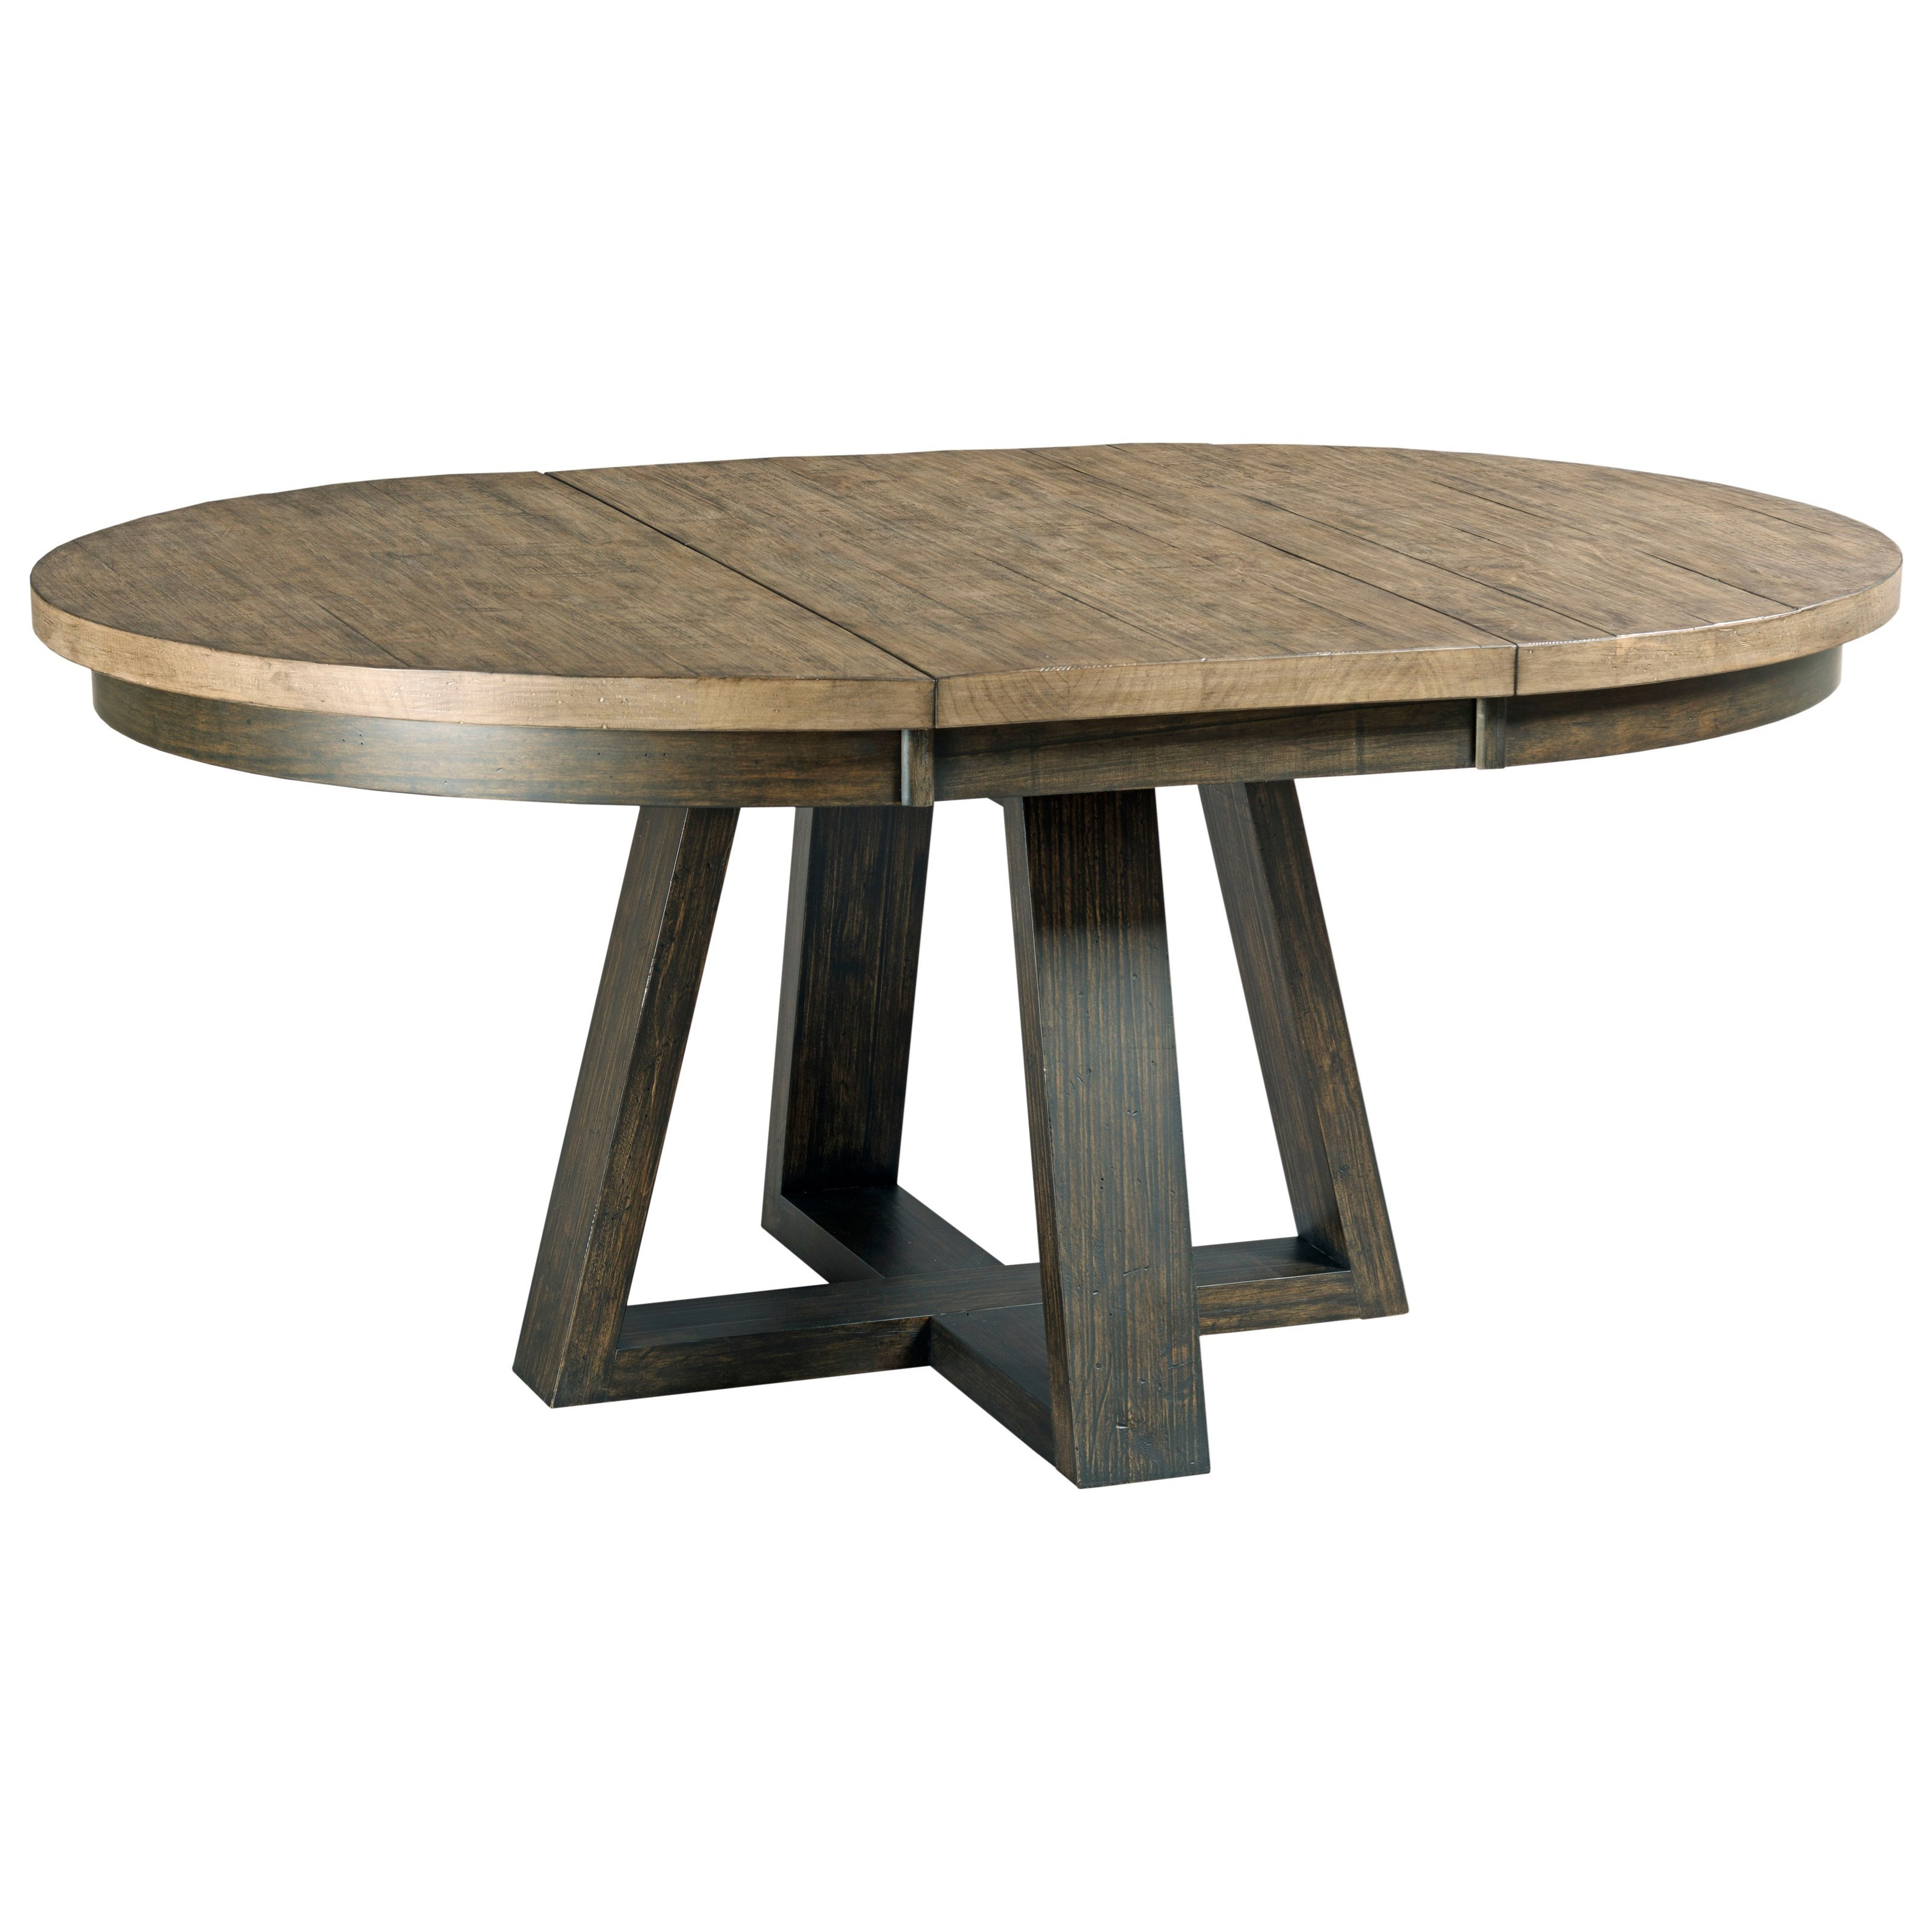 Kincaid furniture plank road button solid wood dining